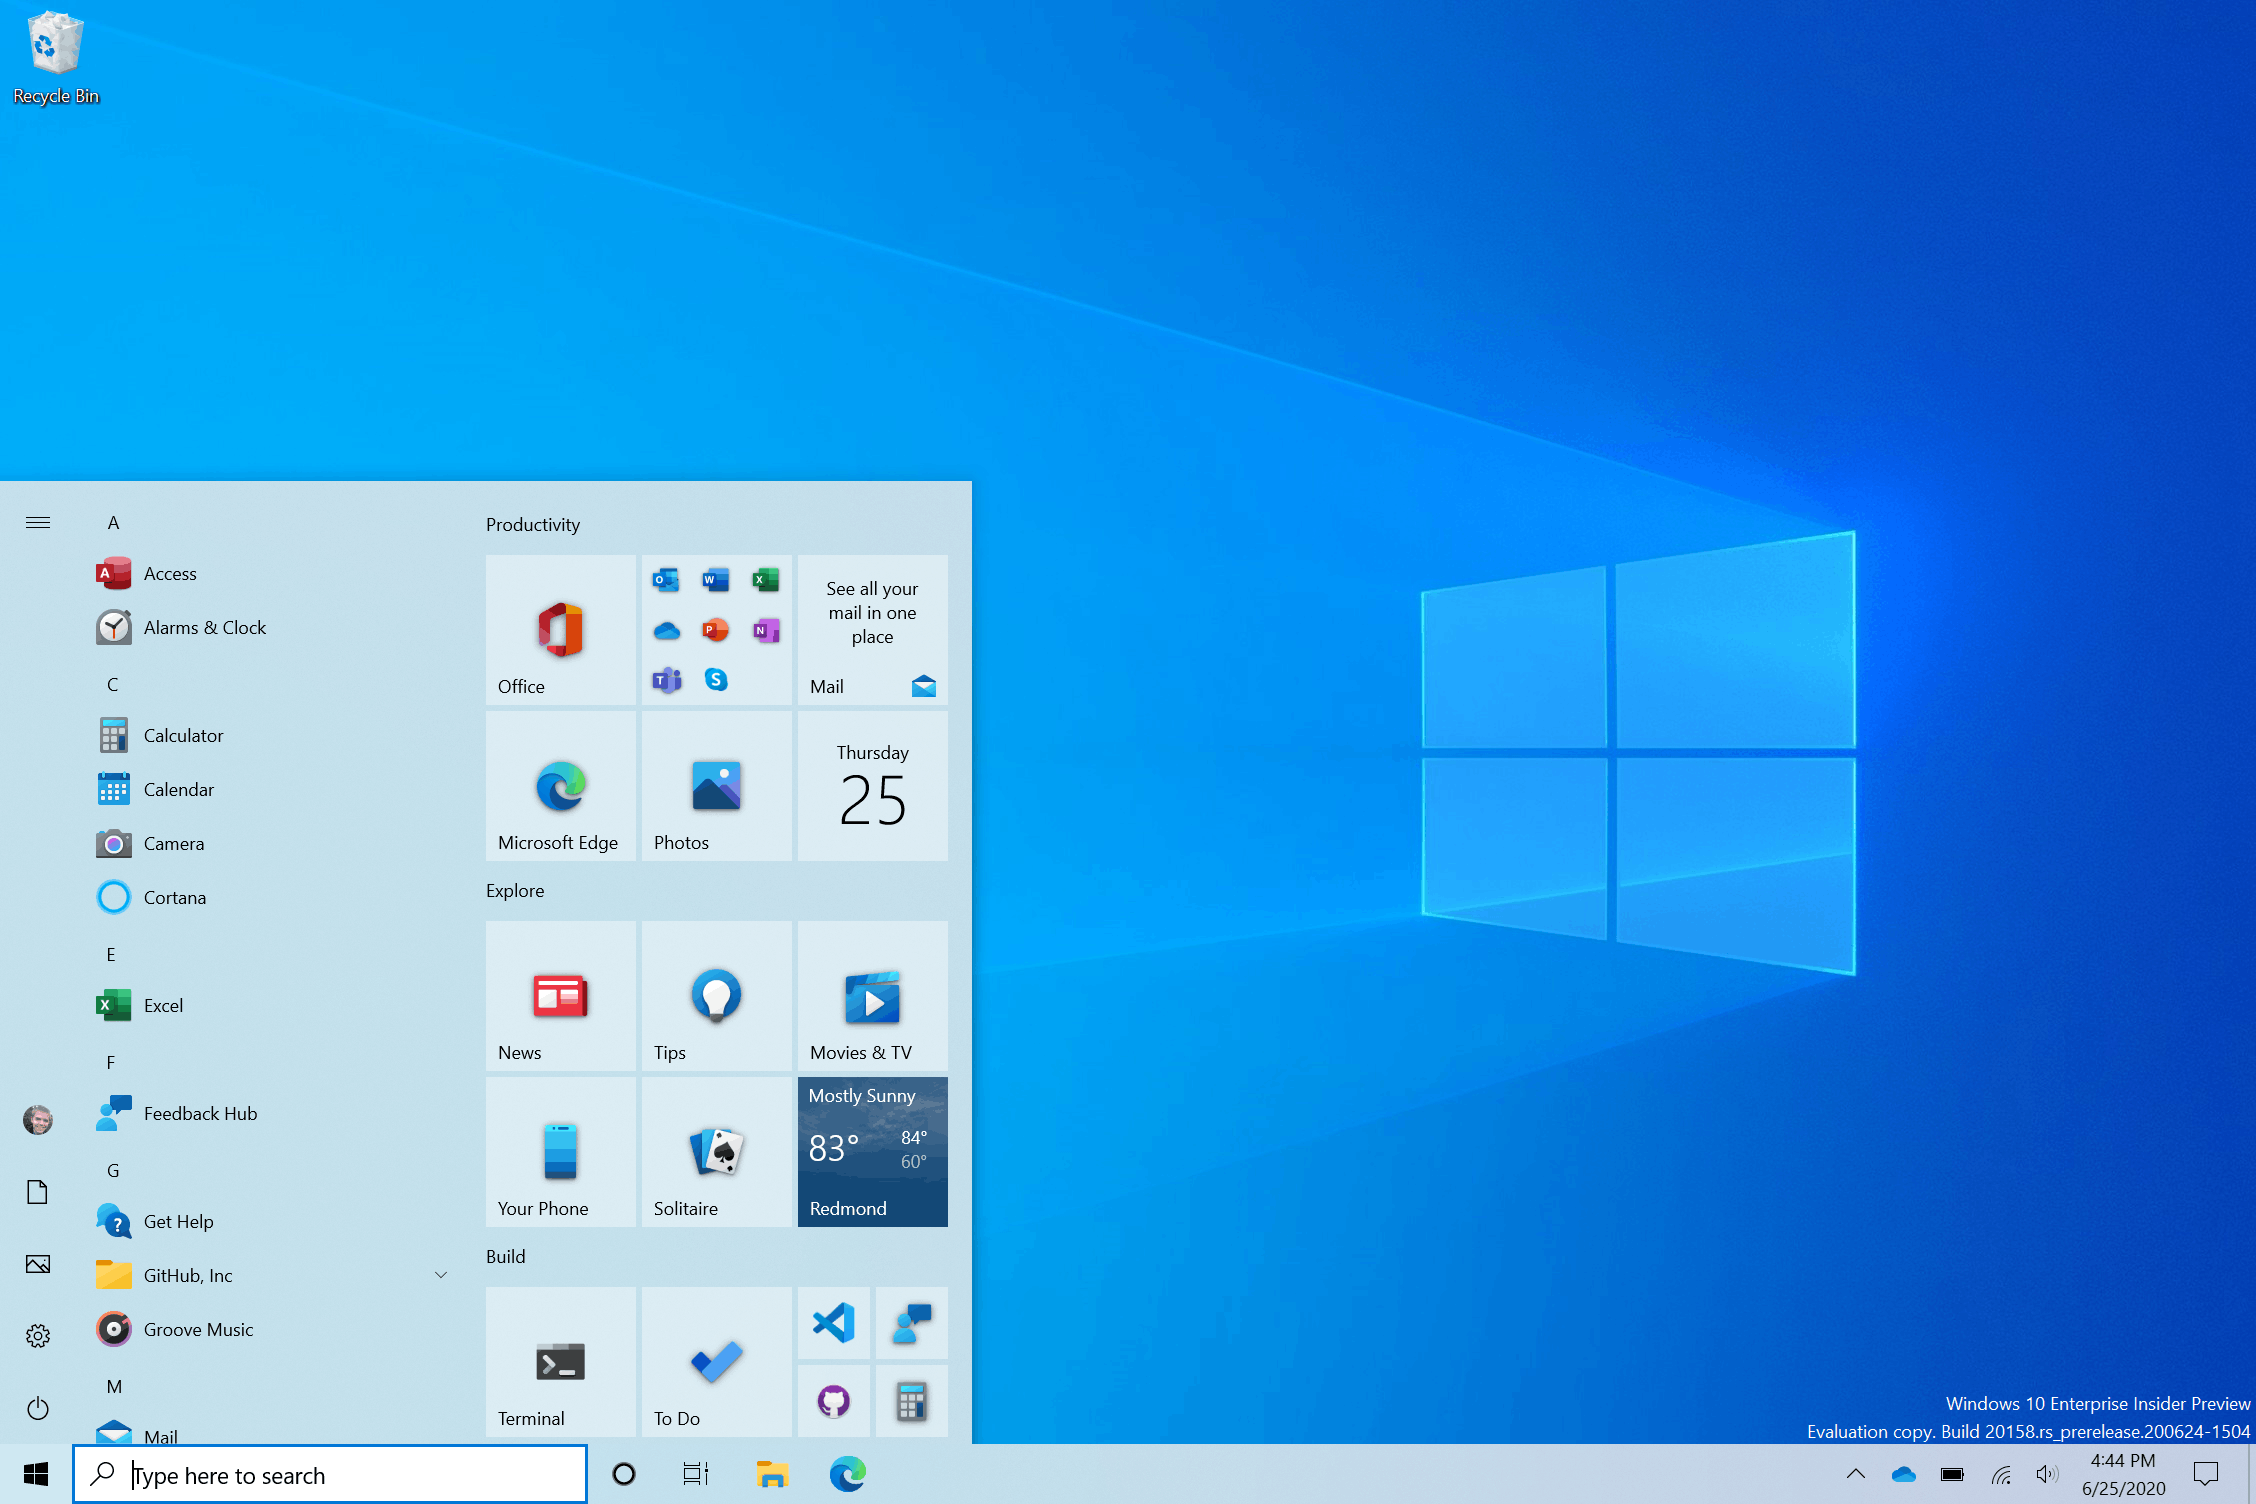 Windows 10 Start Menu Tiles Light